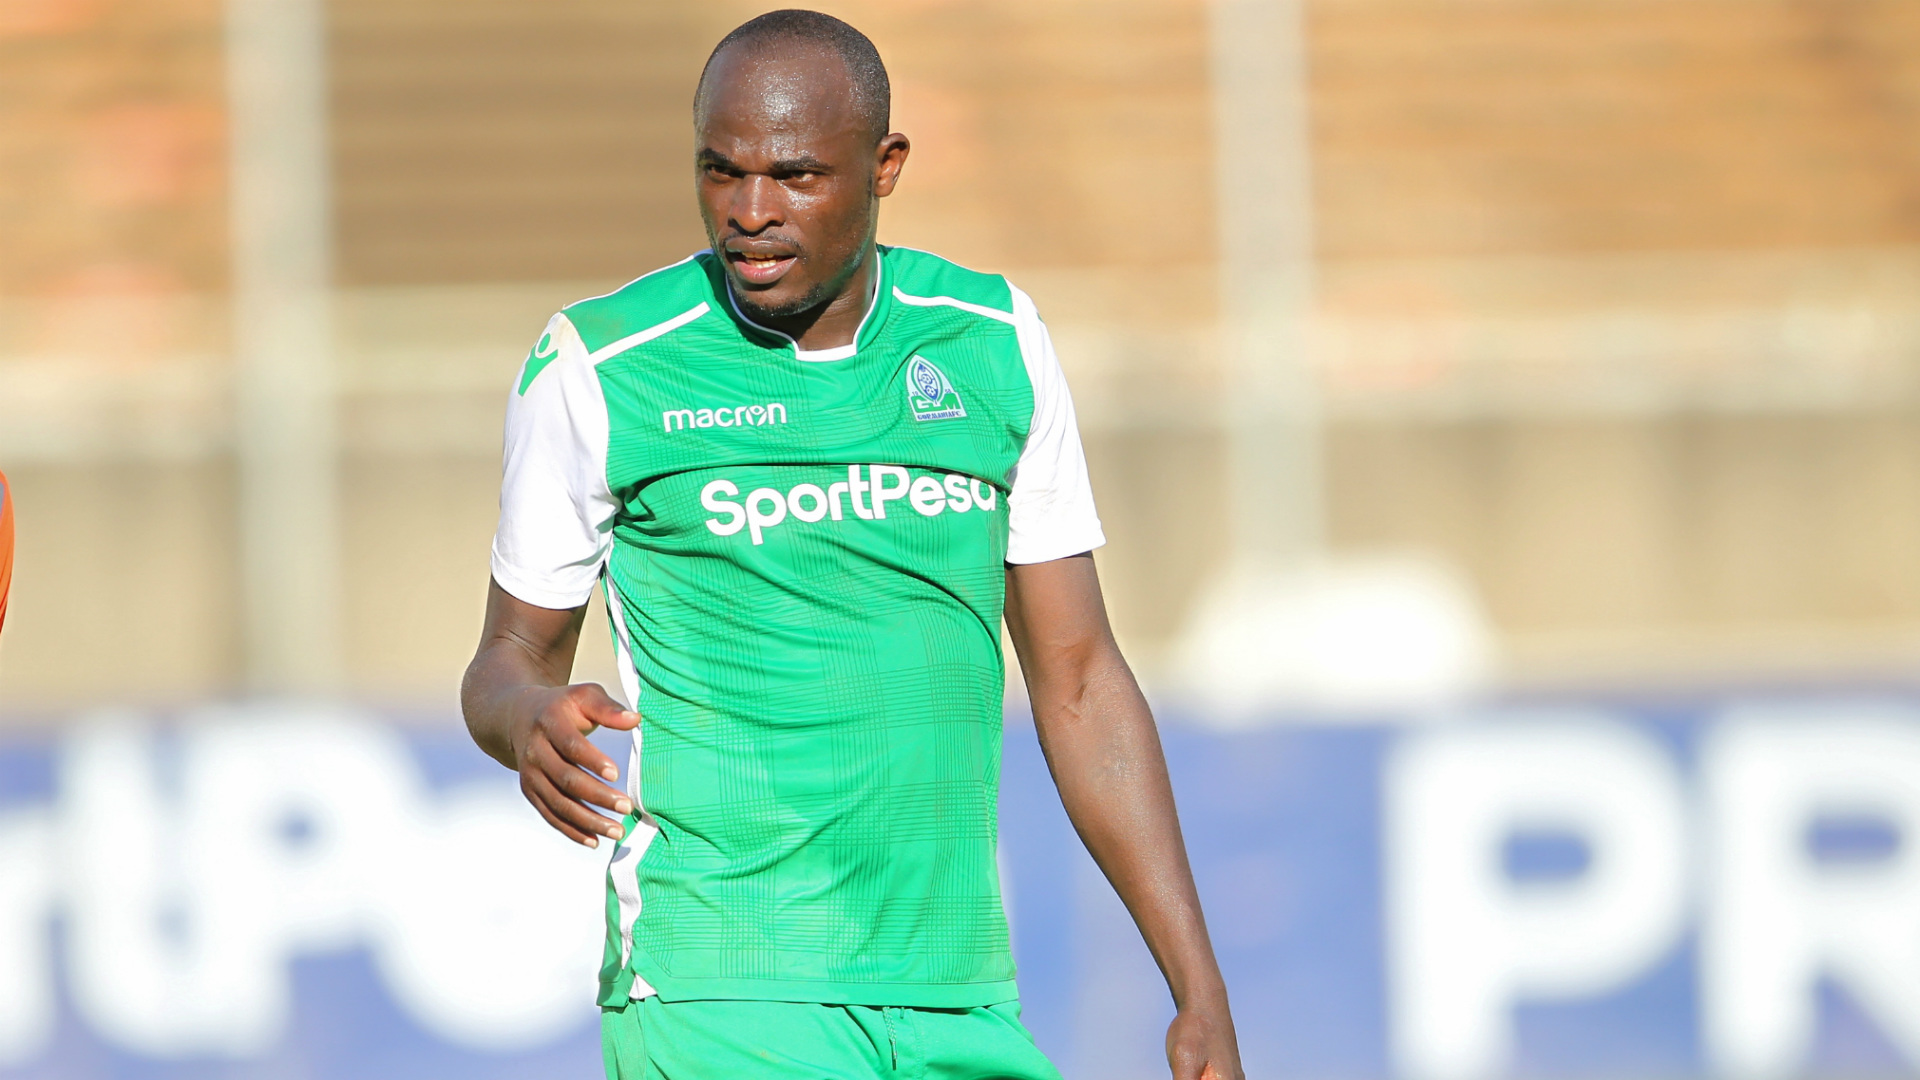 Kenyan footballer Dennis Oliech. Gor Mahia terminated his contract over issues of indiscipline and misconduct. www.businesstoday.co.ke